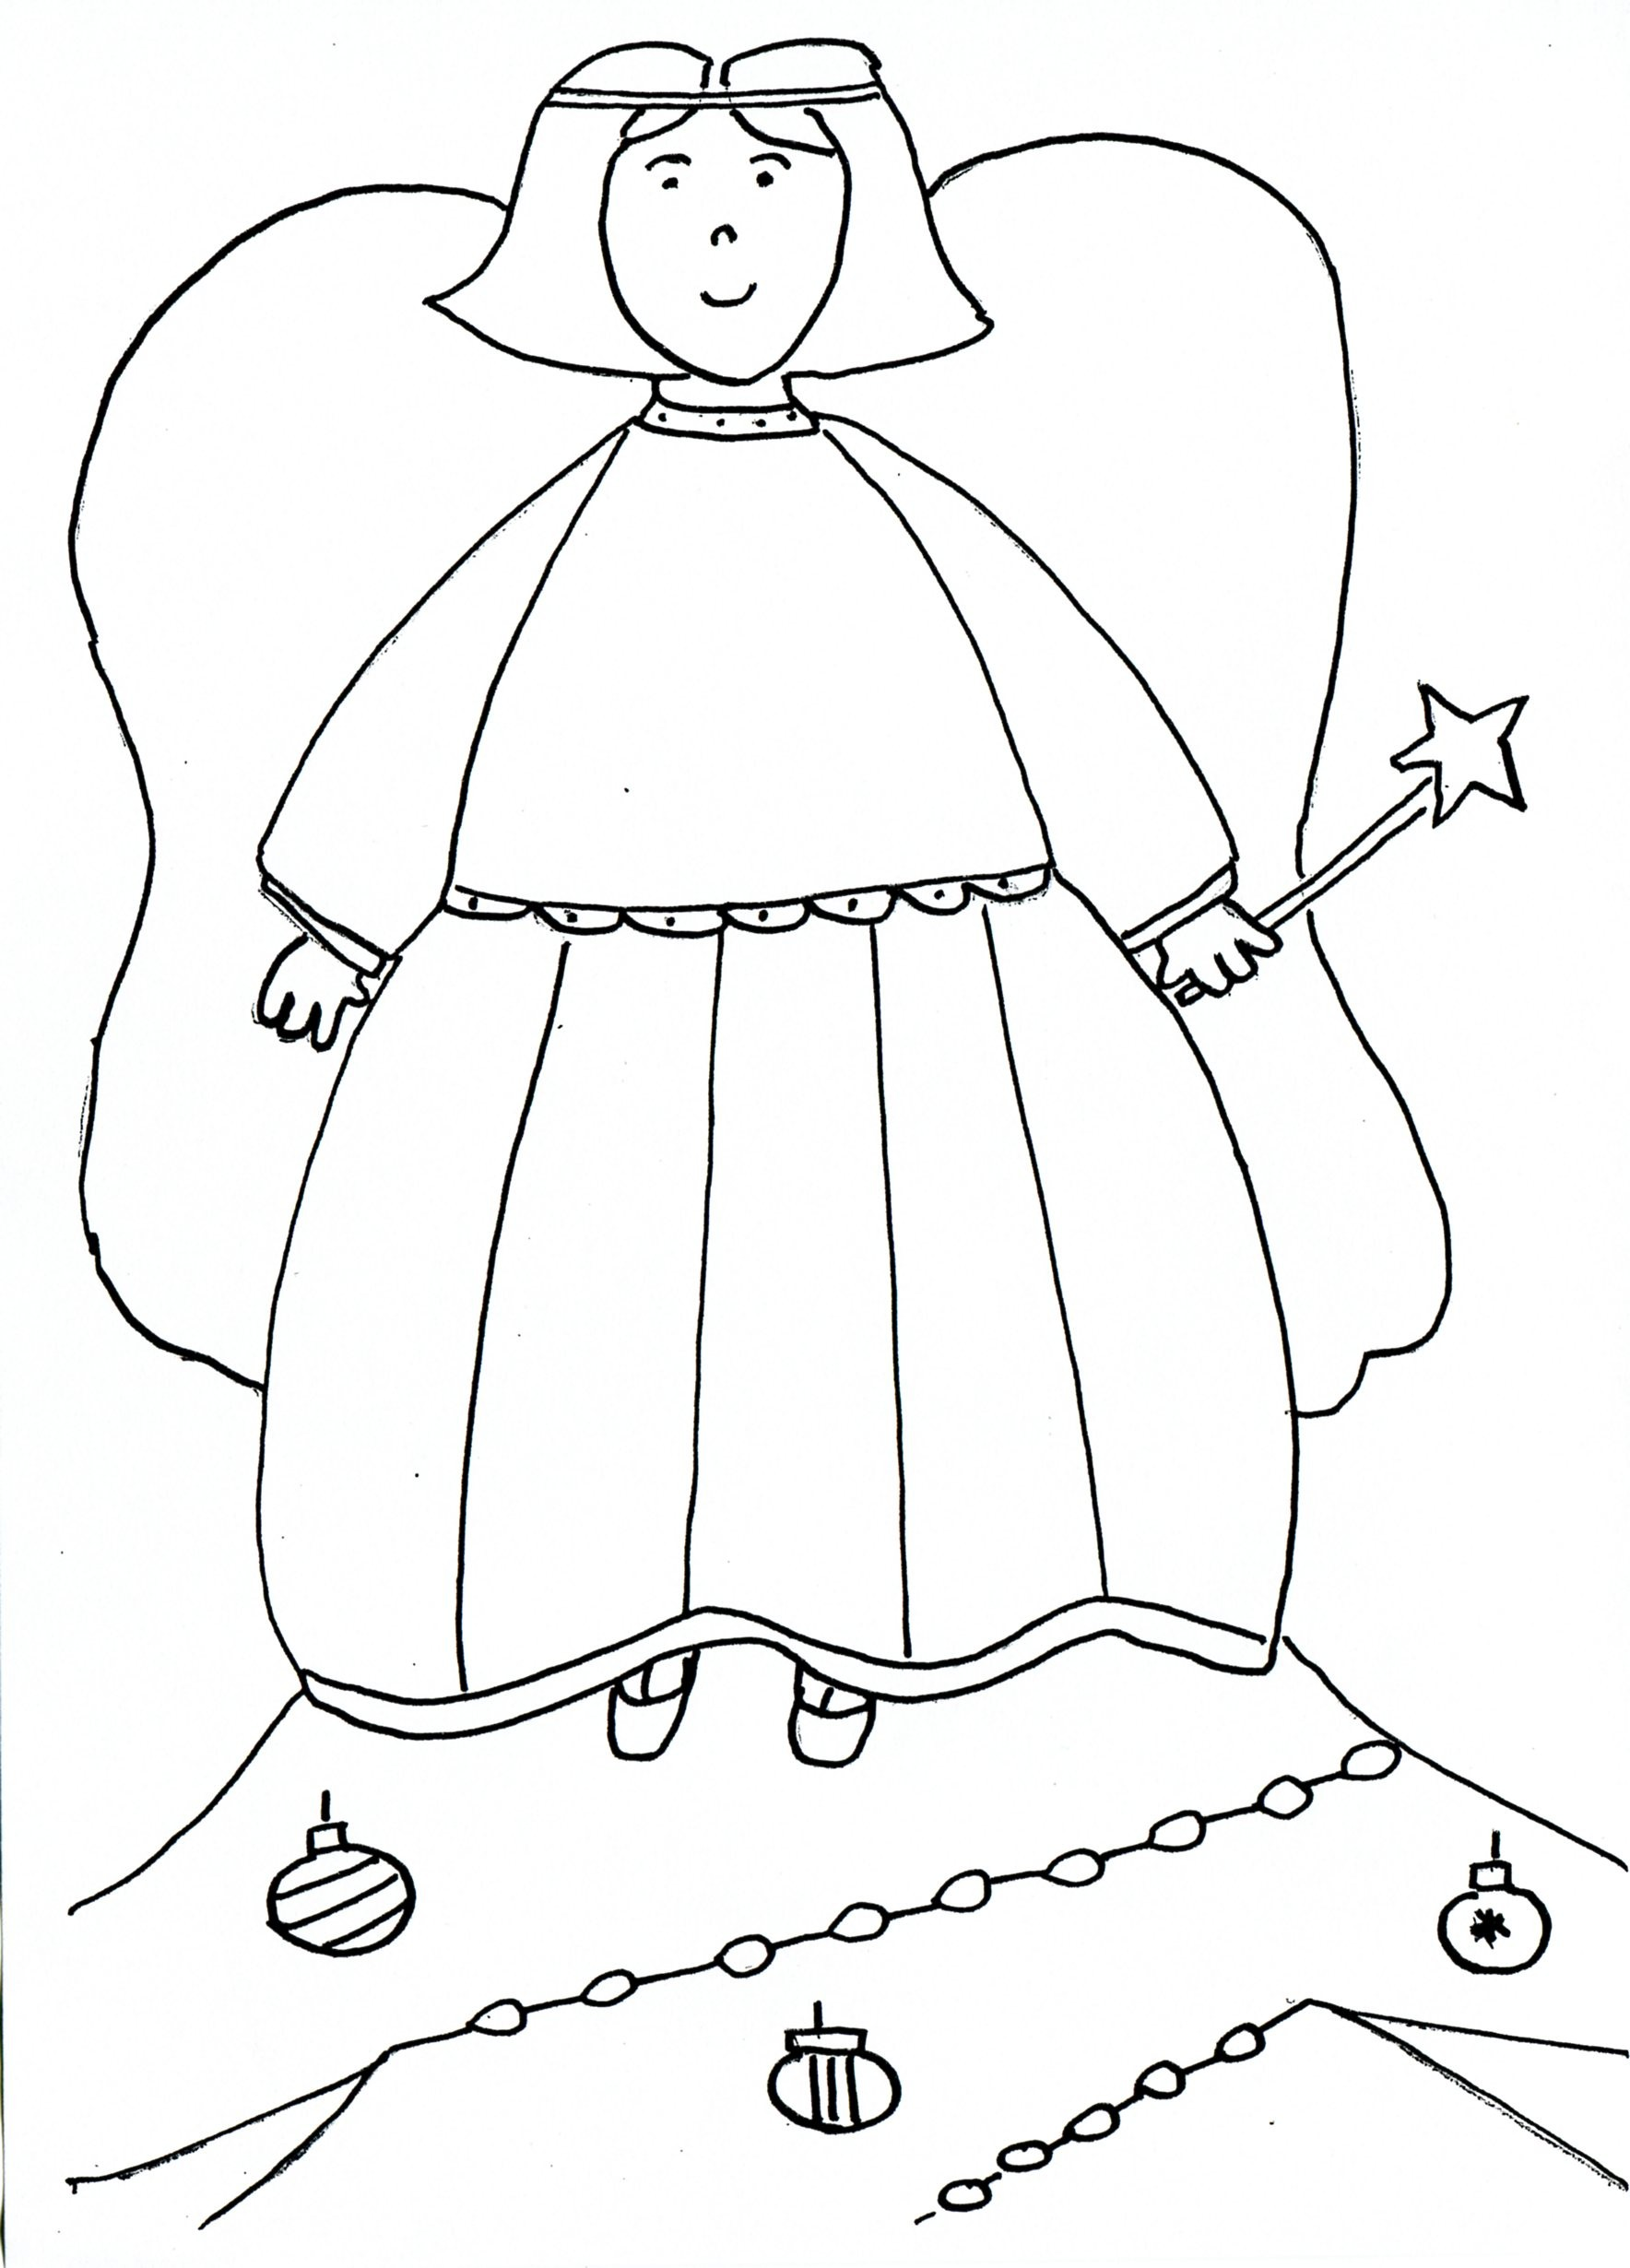 1768x2460 Drawing Template For Kids New Template For Kids Drawing